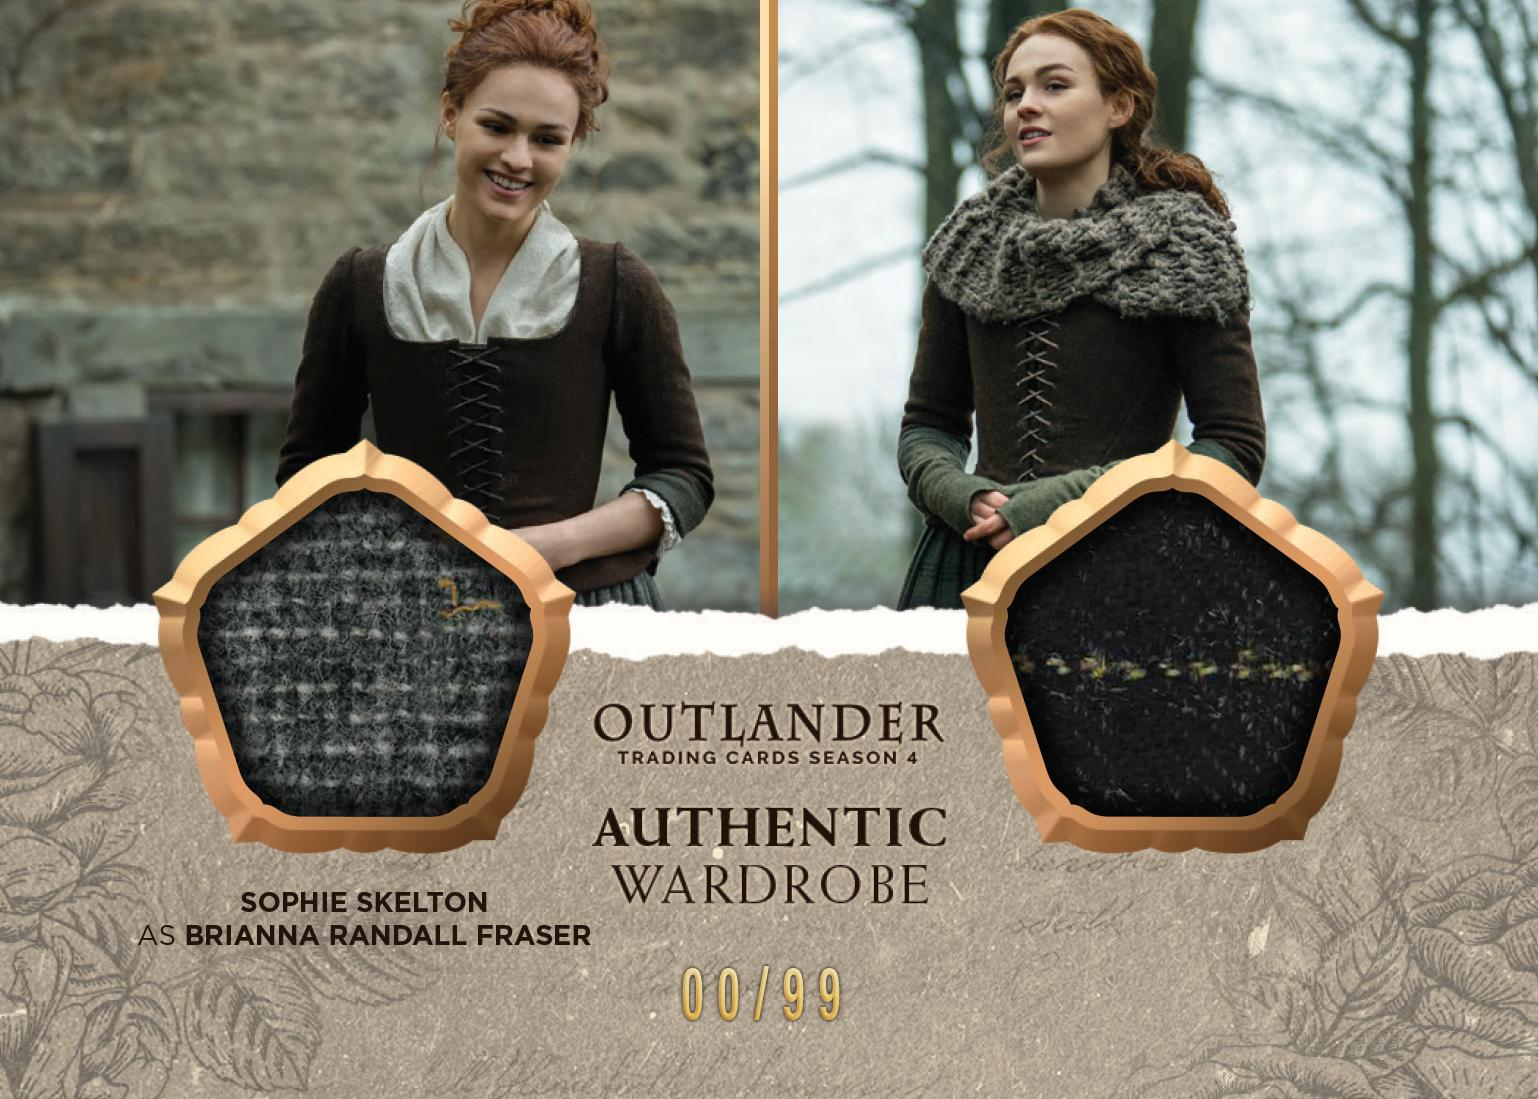 Outlander Trading Cards Season 4: Convention Wardrobe Cards CE5